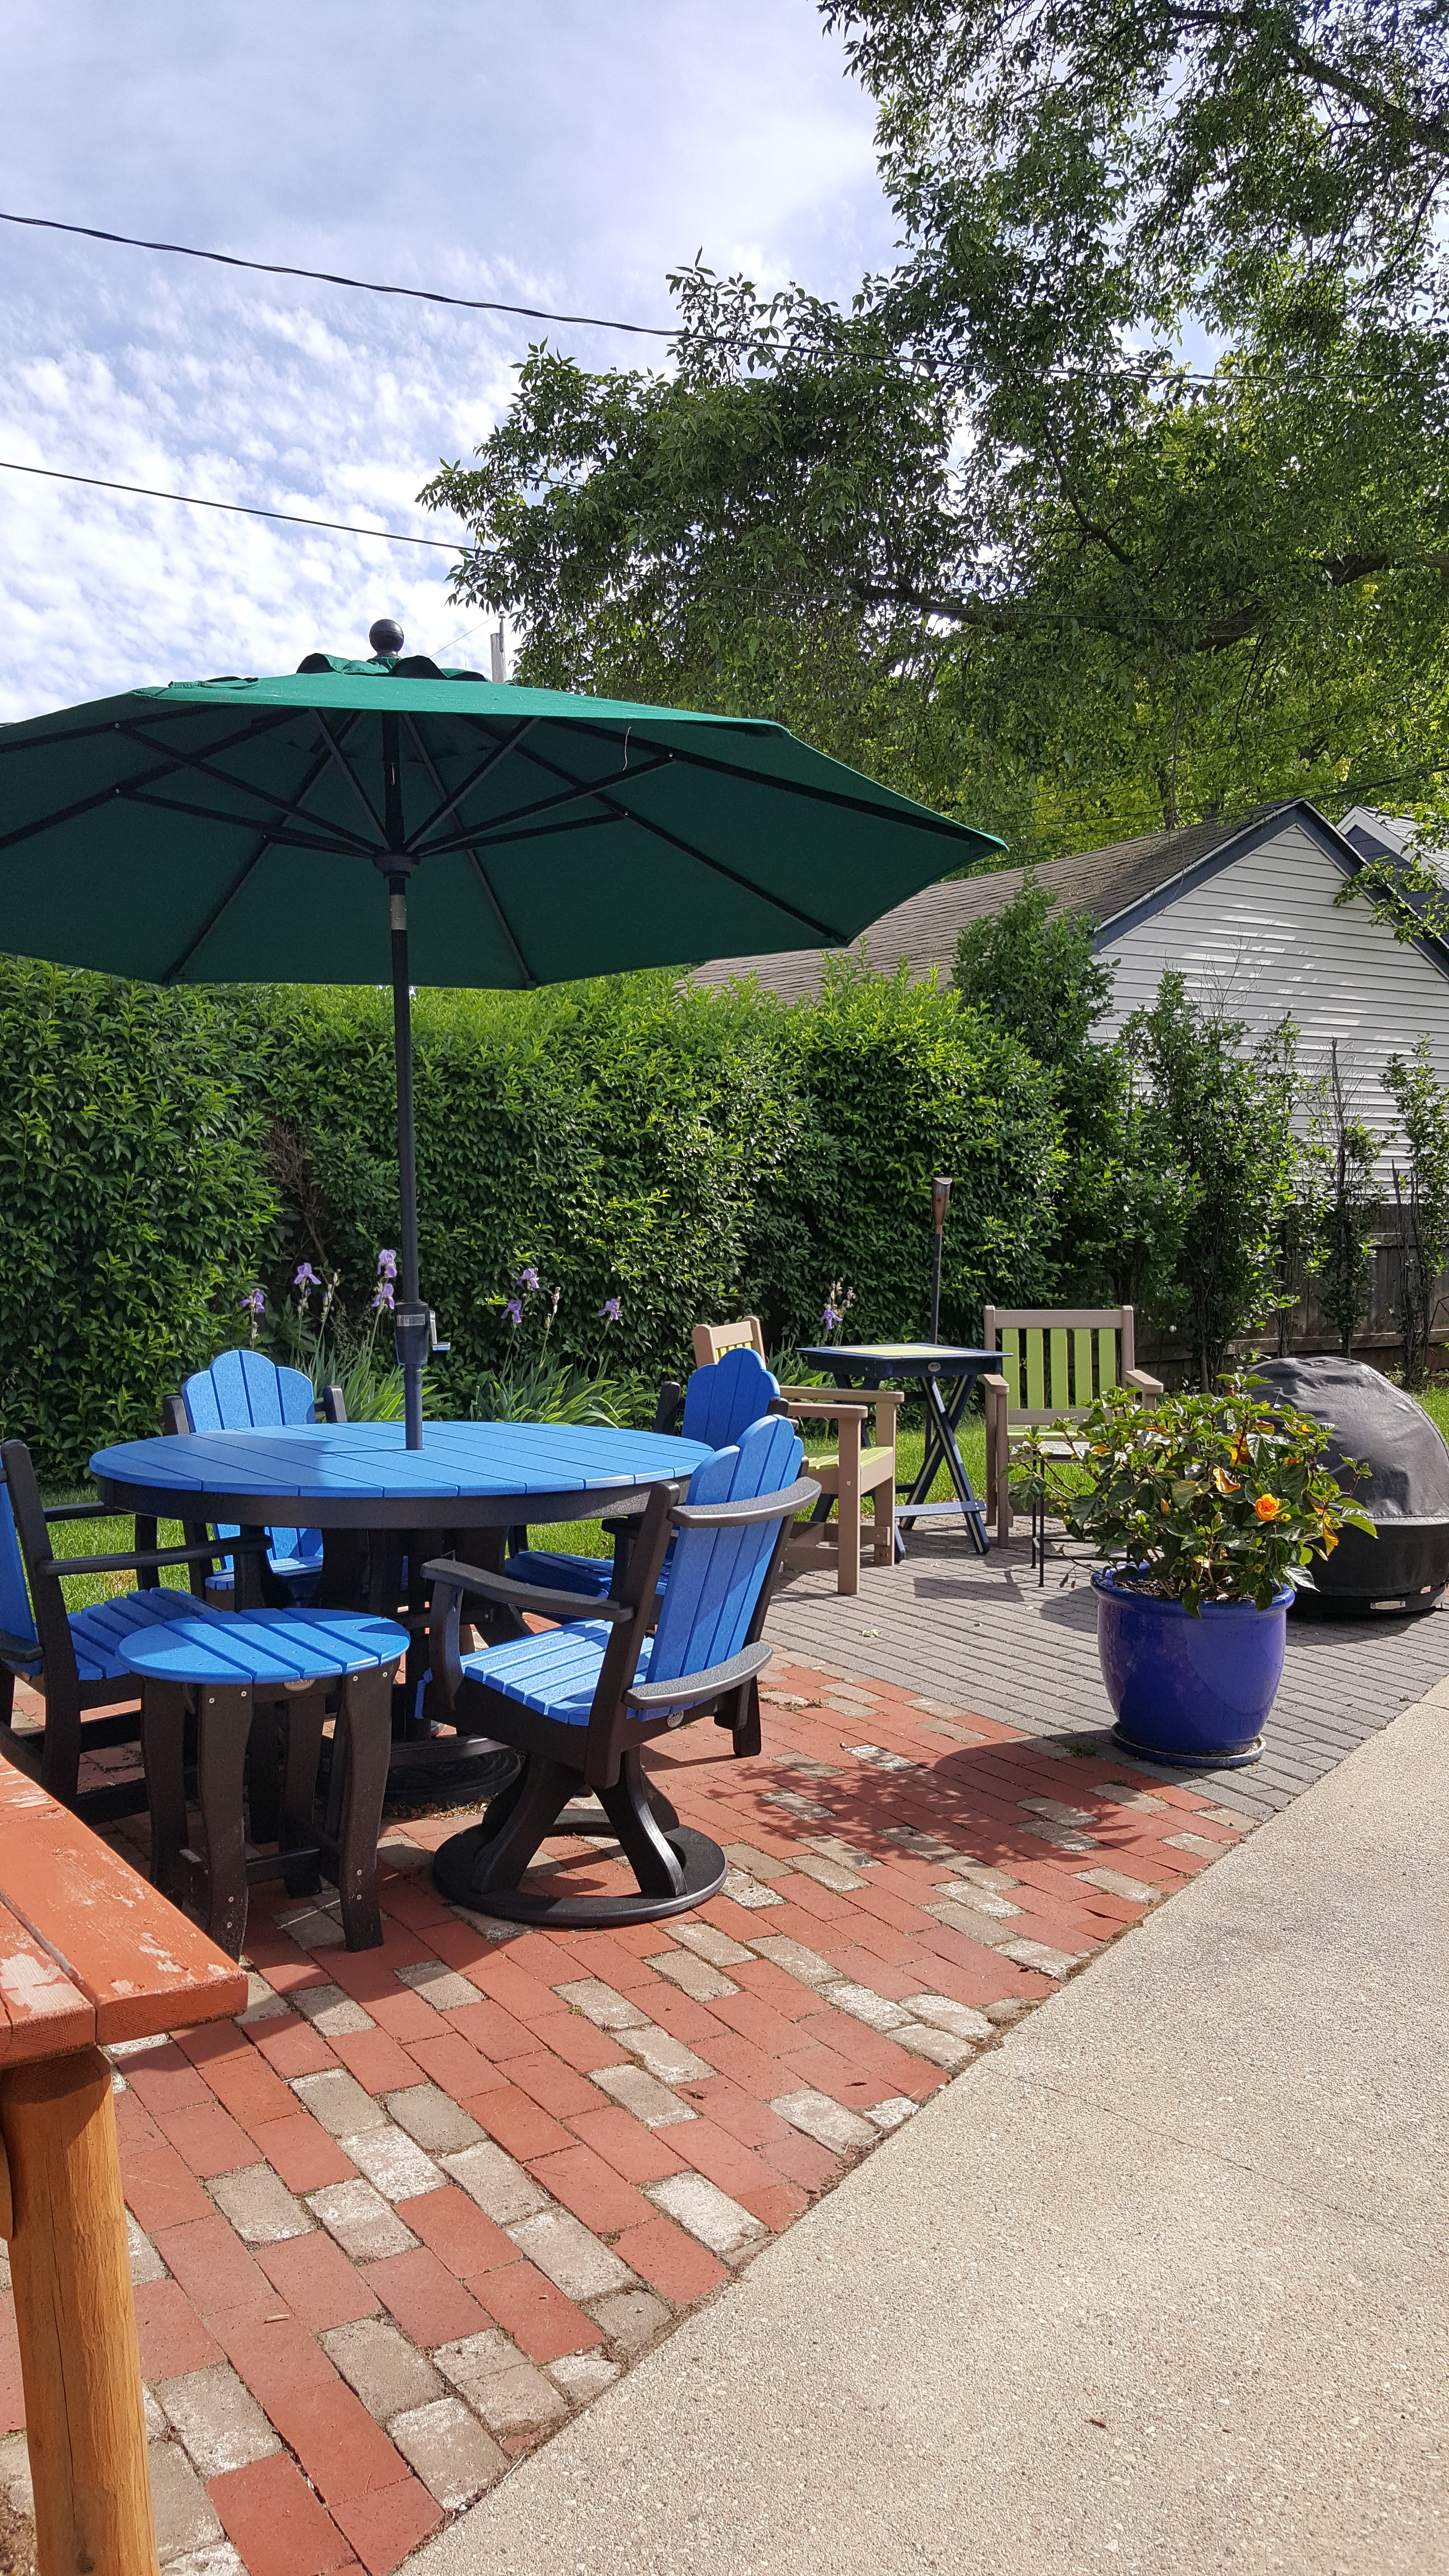 Brighten Up Your Patio with Bright Blue and Patriot Blue Deacon's Round Pedestal Table & Chairs